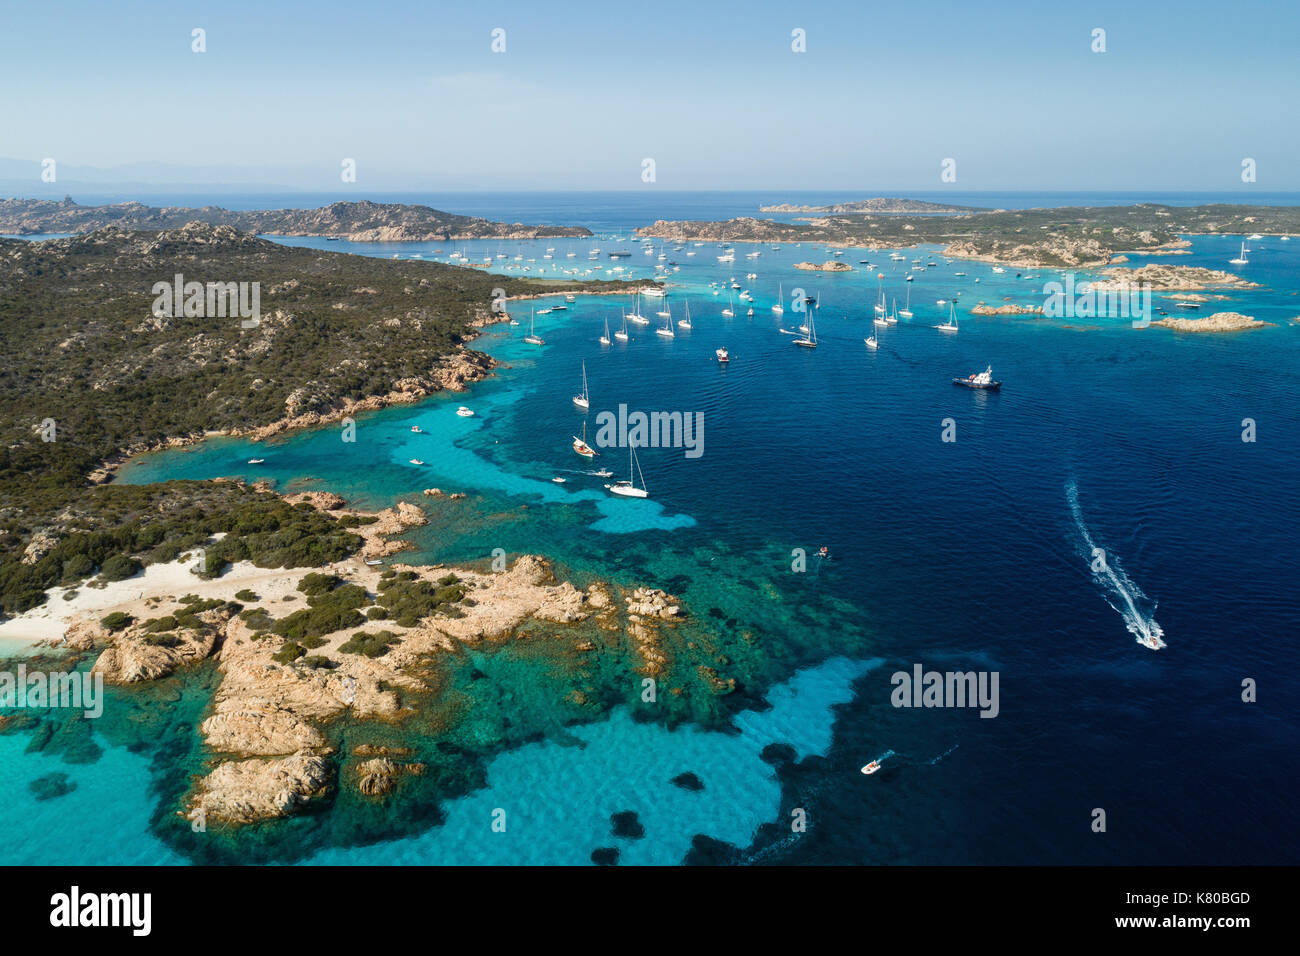 Aerial view of sailing yachts anchored near islands between Sardinia and Corsica - Stock Image